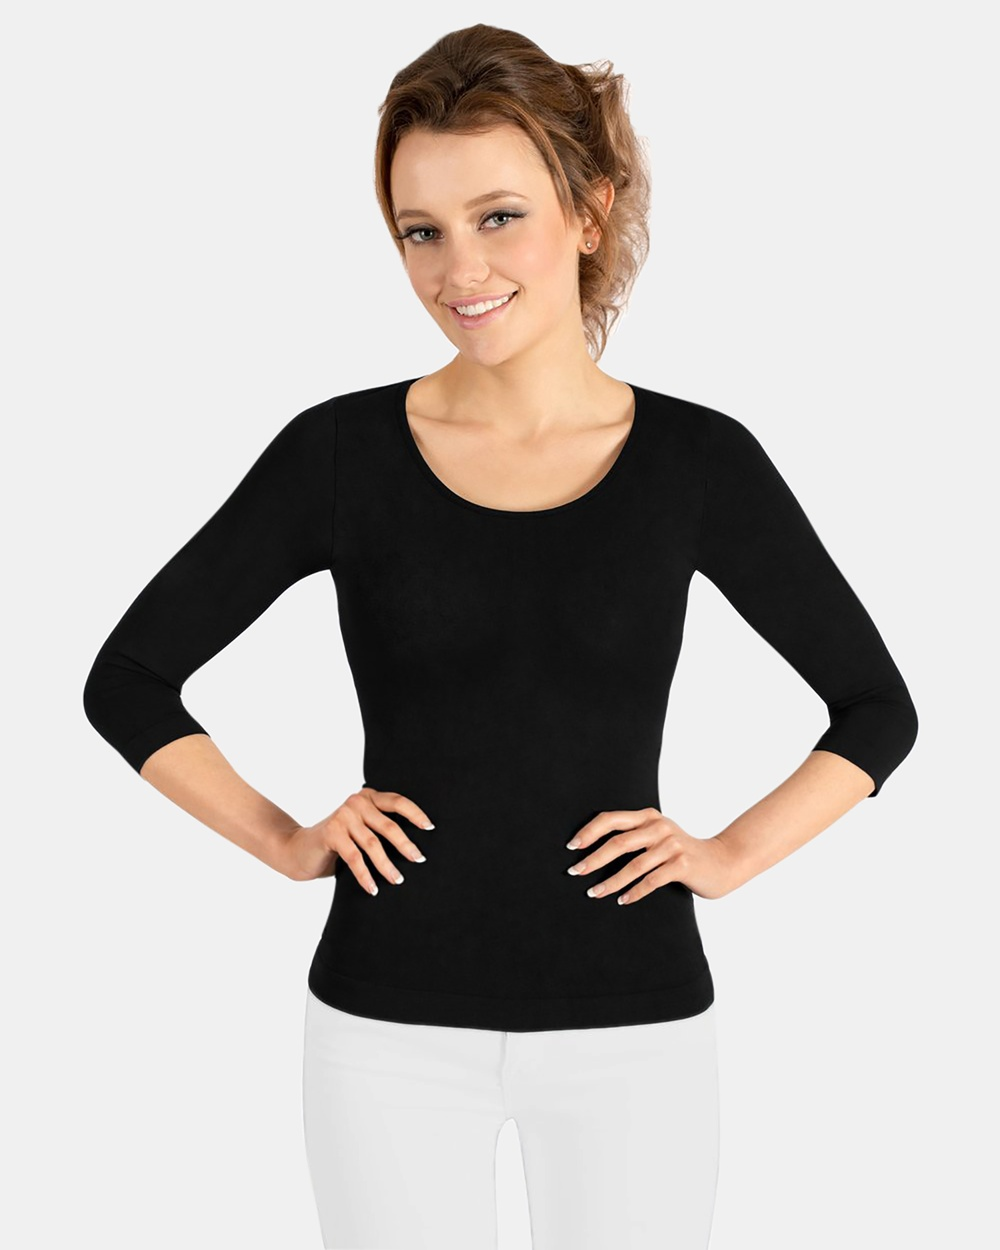 B Free Intimate Apparel Bamboo 3 4 Sleeve Top Tops Black Bamboo 3-4 Sleeve Top